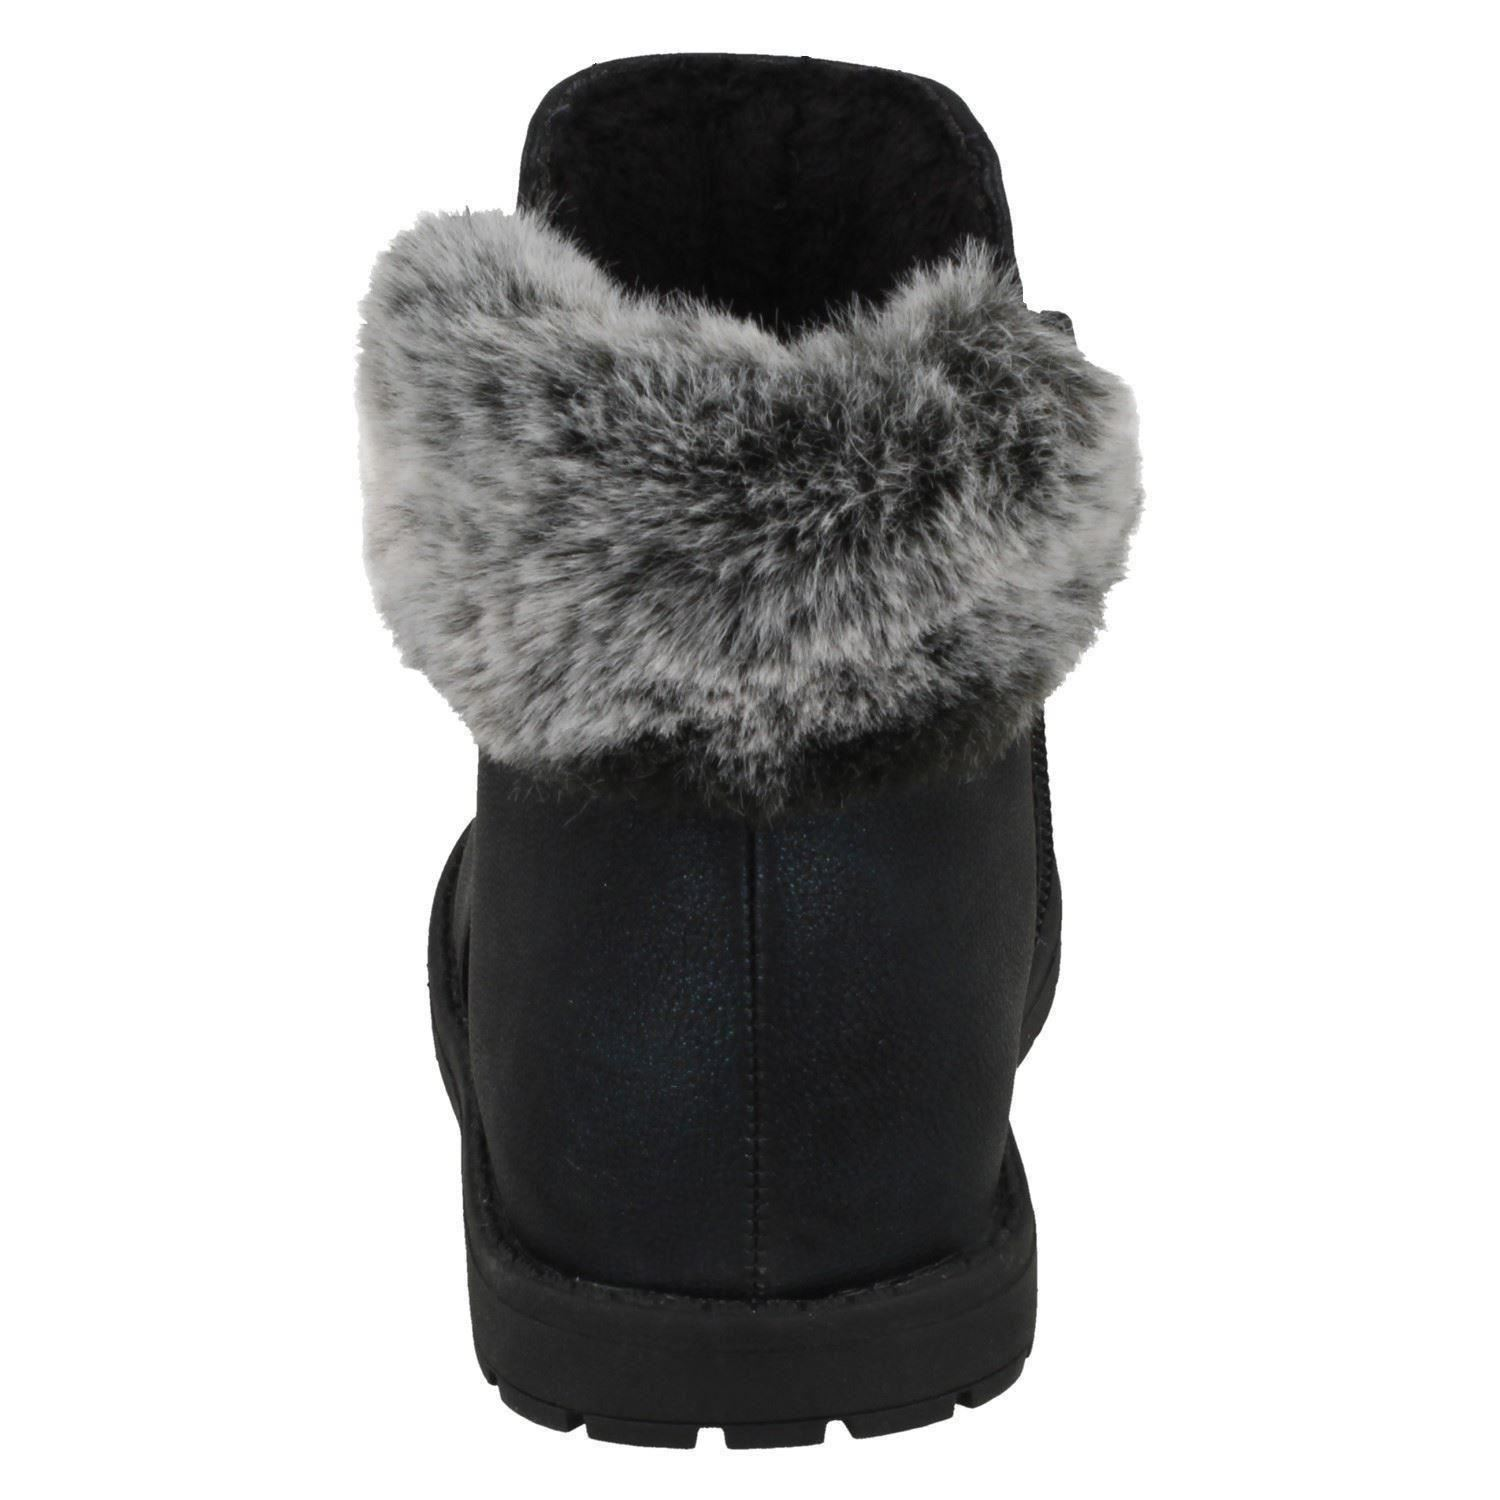 H5R084 SPOT ON GIRLS LOW HEEL CASUAL ANIMAL EARS FAUX FUR WINTER ANKLE BOOTS